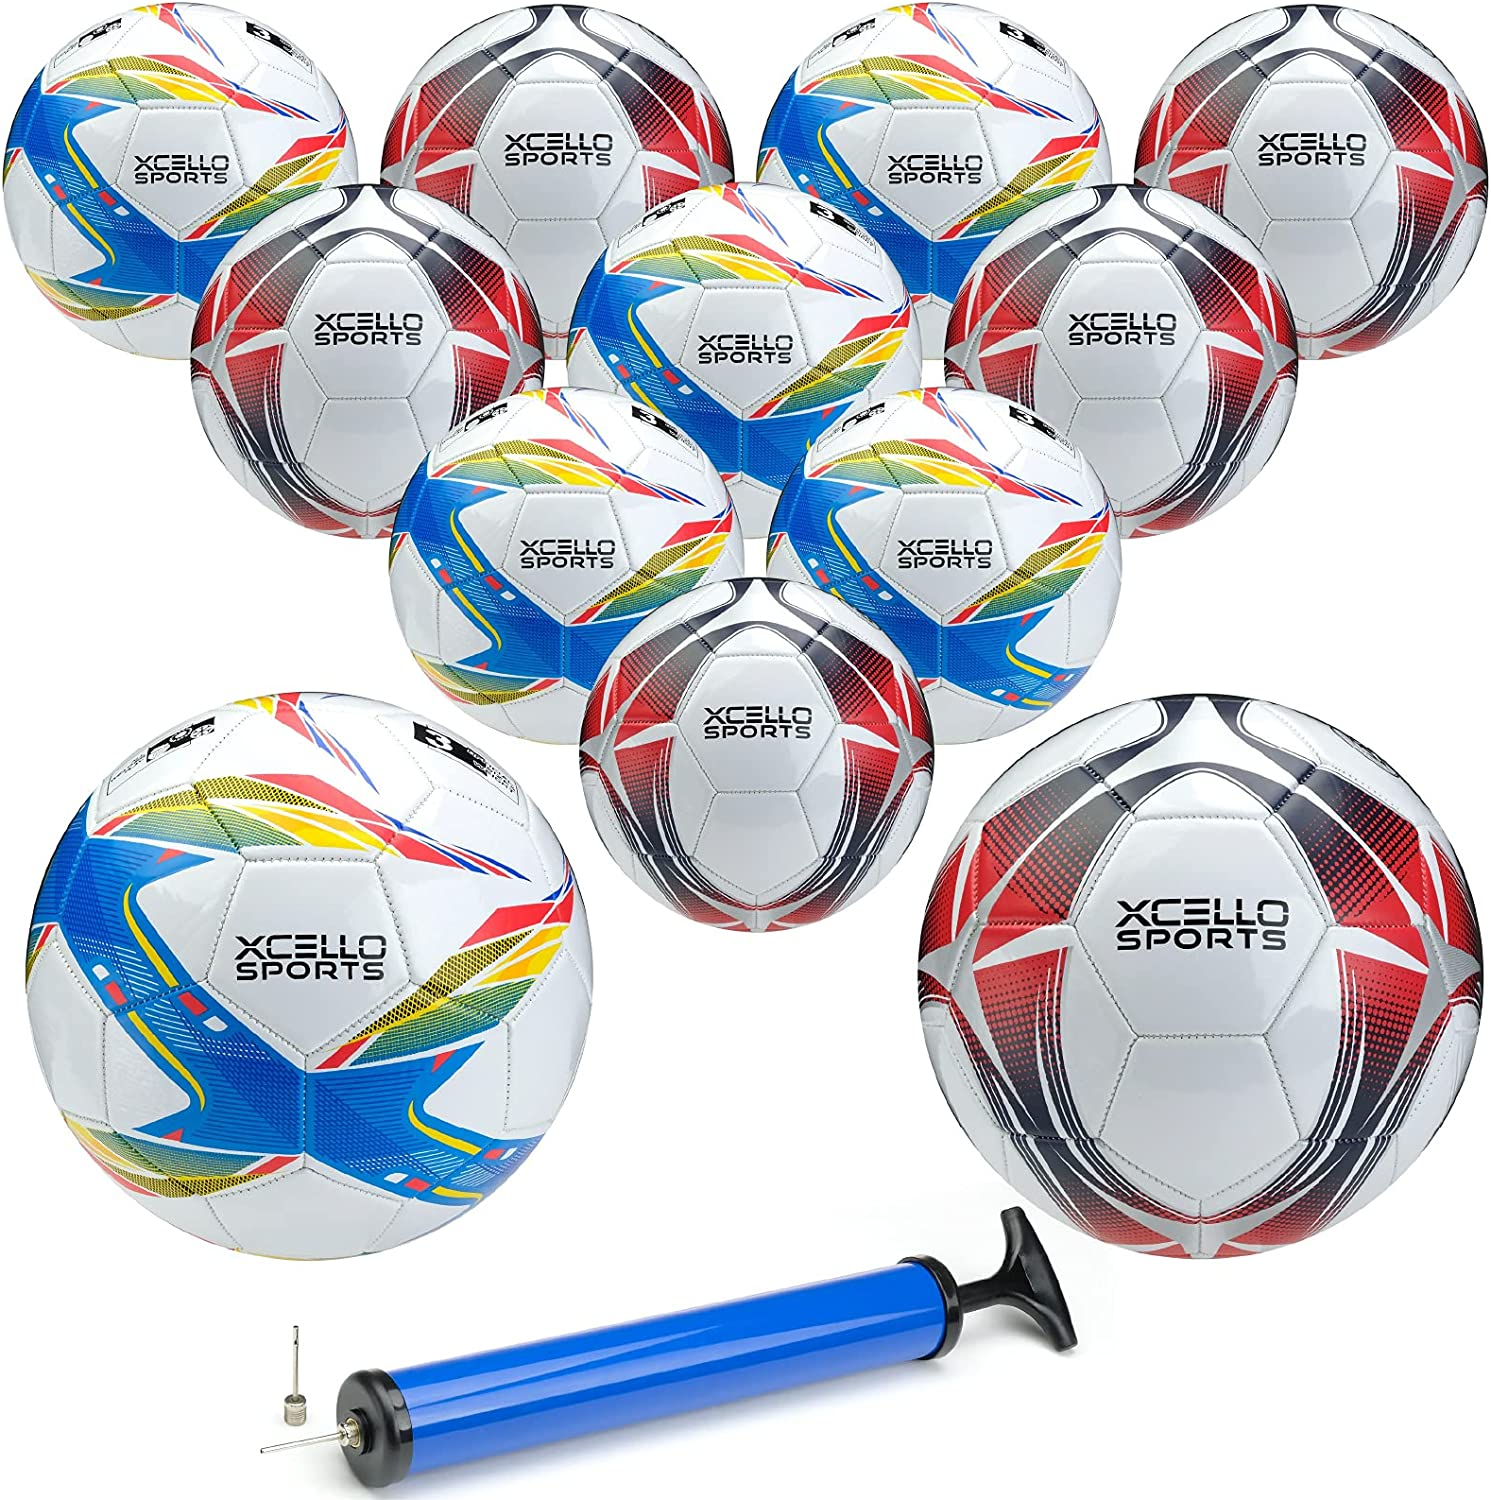 Xcello Sports Omaha Mall Soccer Balls - Size 3 4 or Graphi Two Unique Louisville-Jefferson County Mall 5